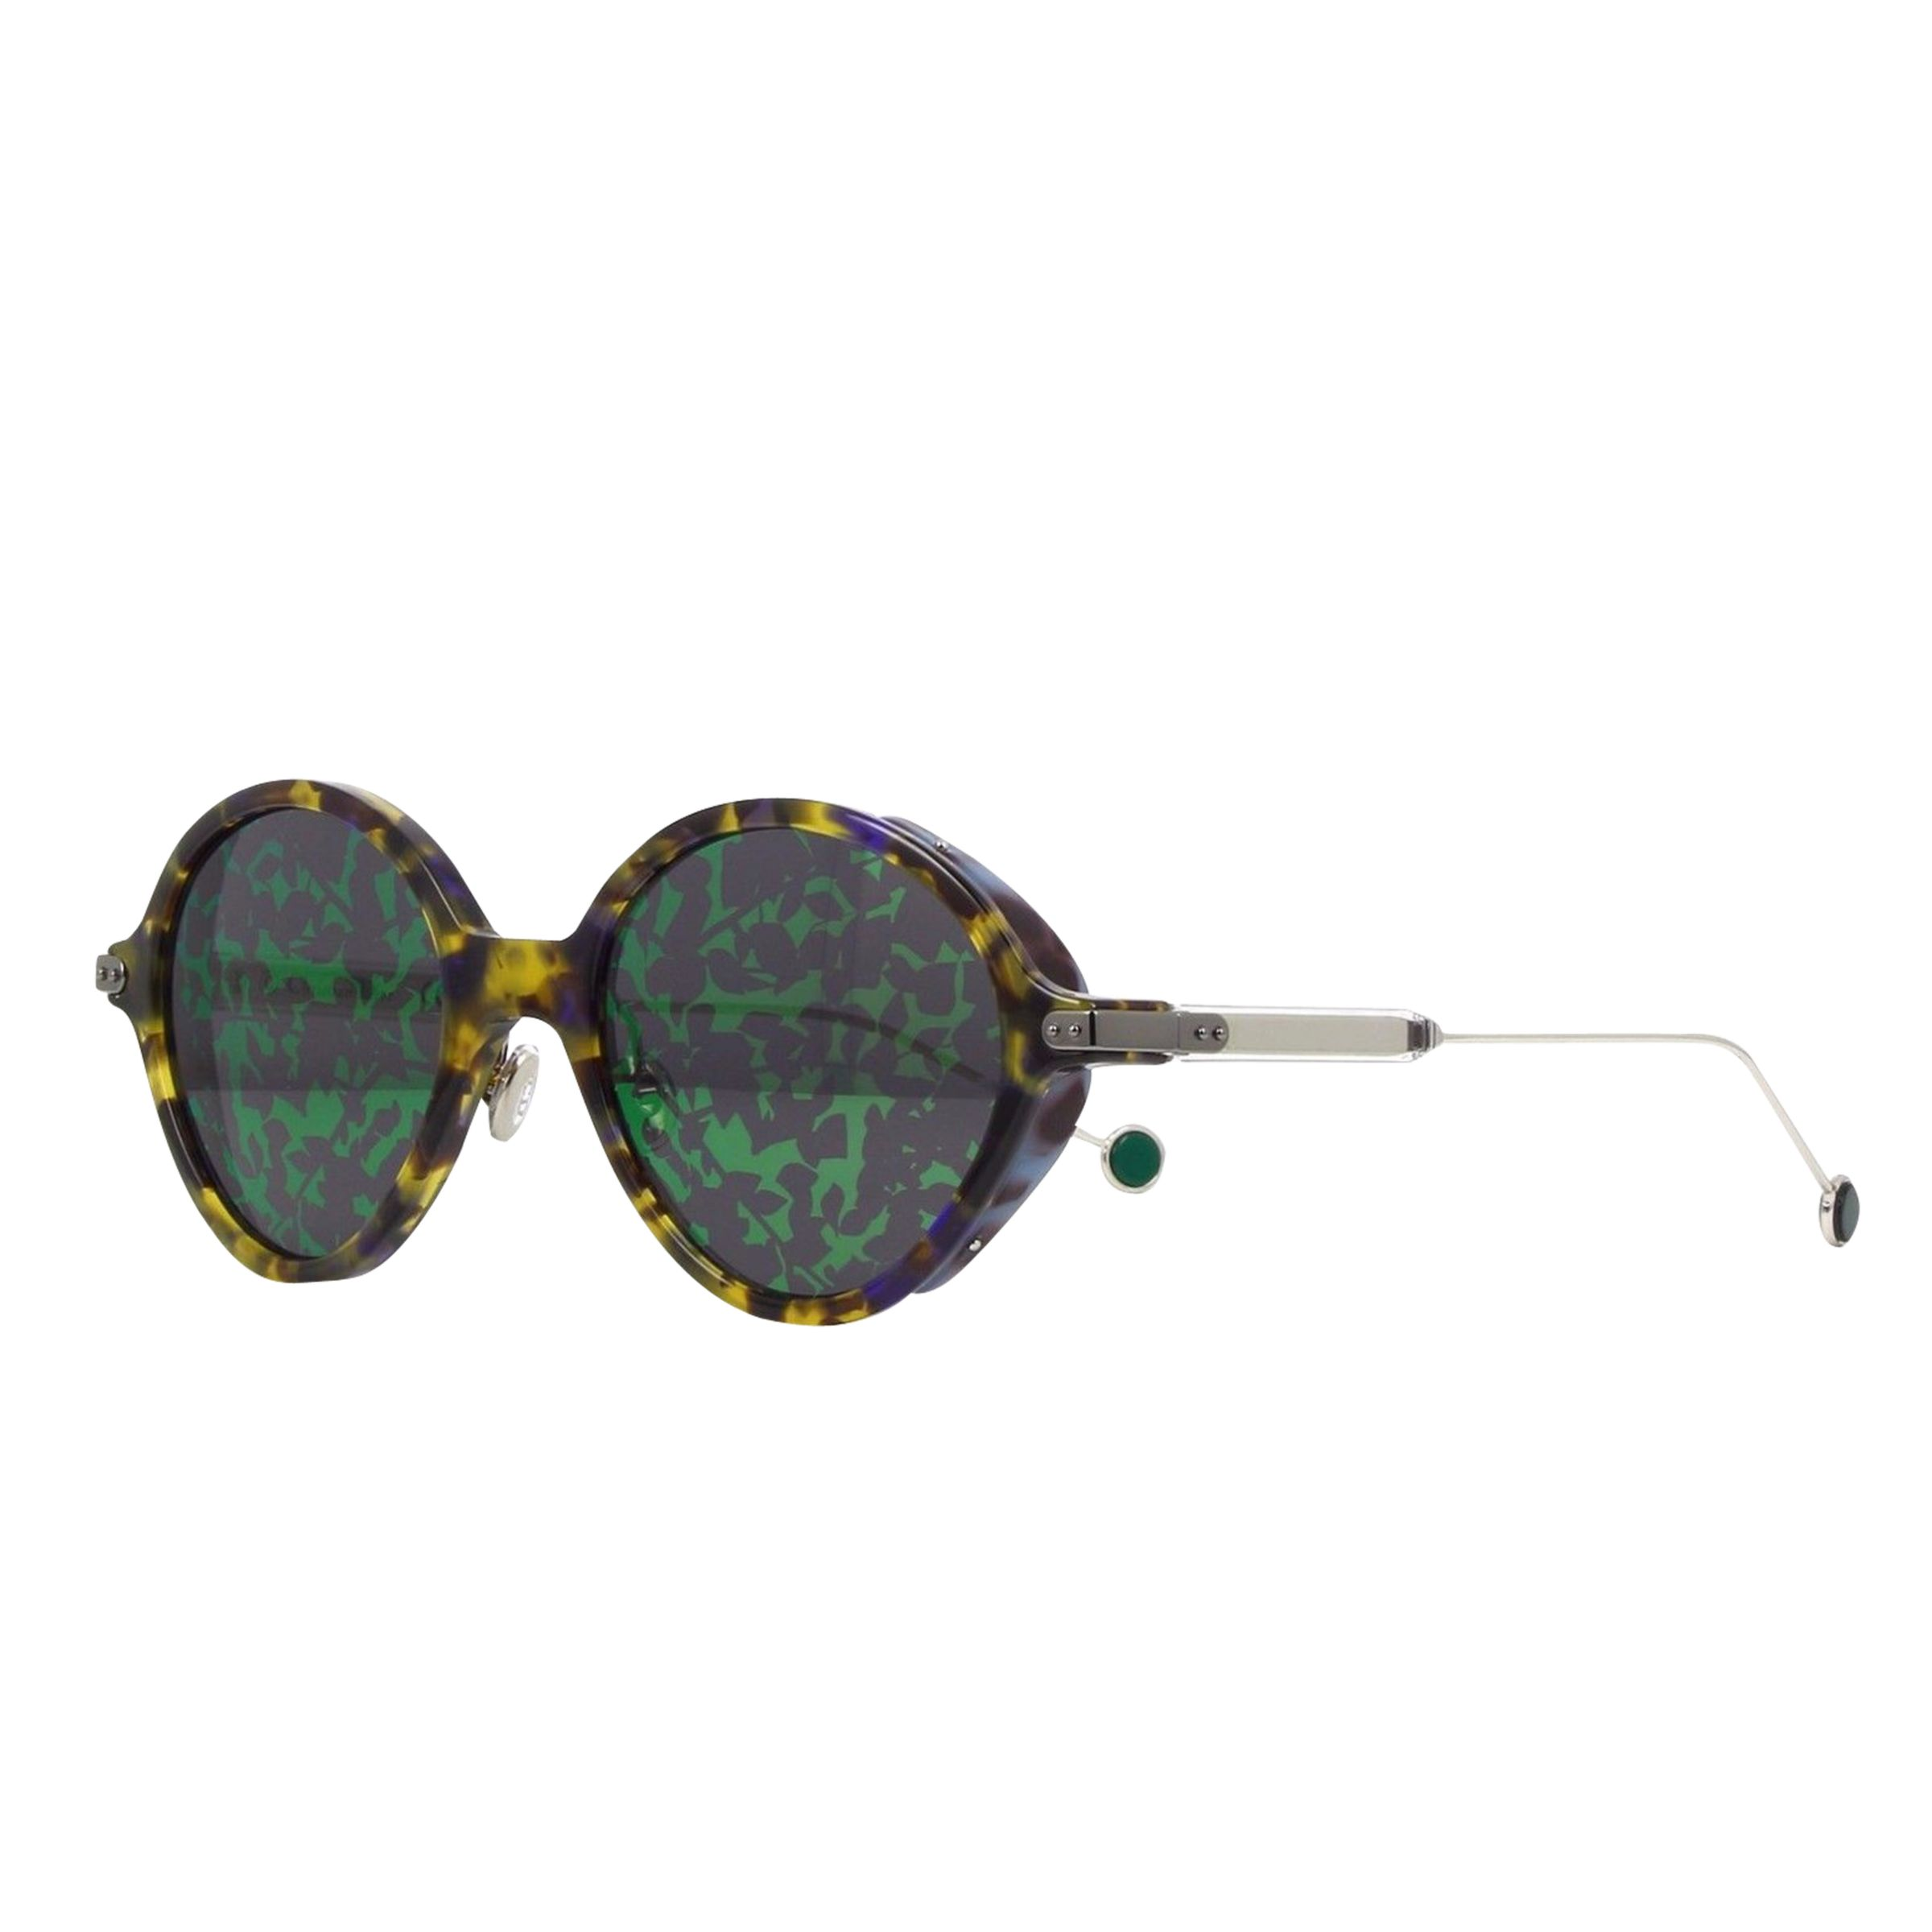 38fa98e503a Dior Umbrage Round Sunglasses at John Lewis   Partners